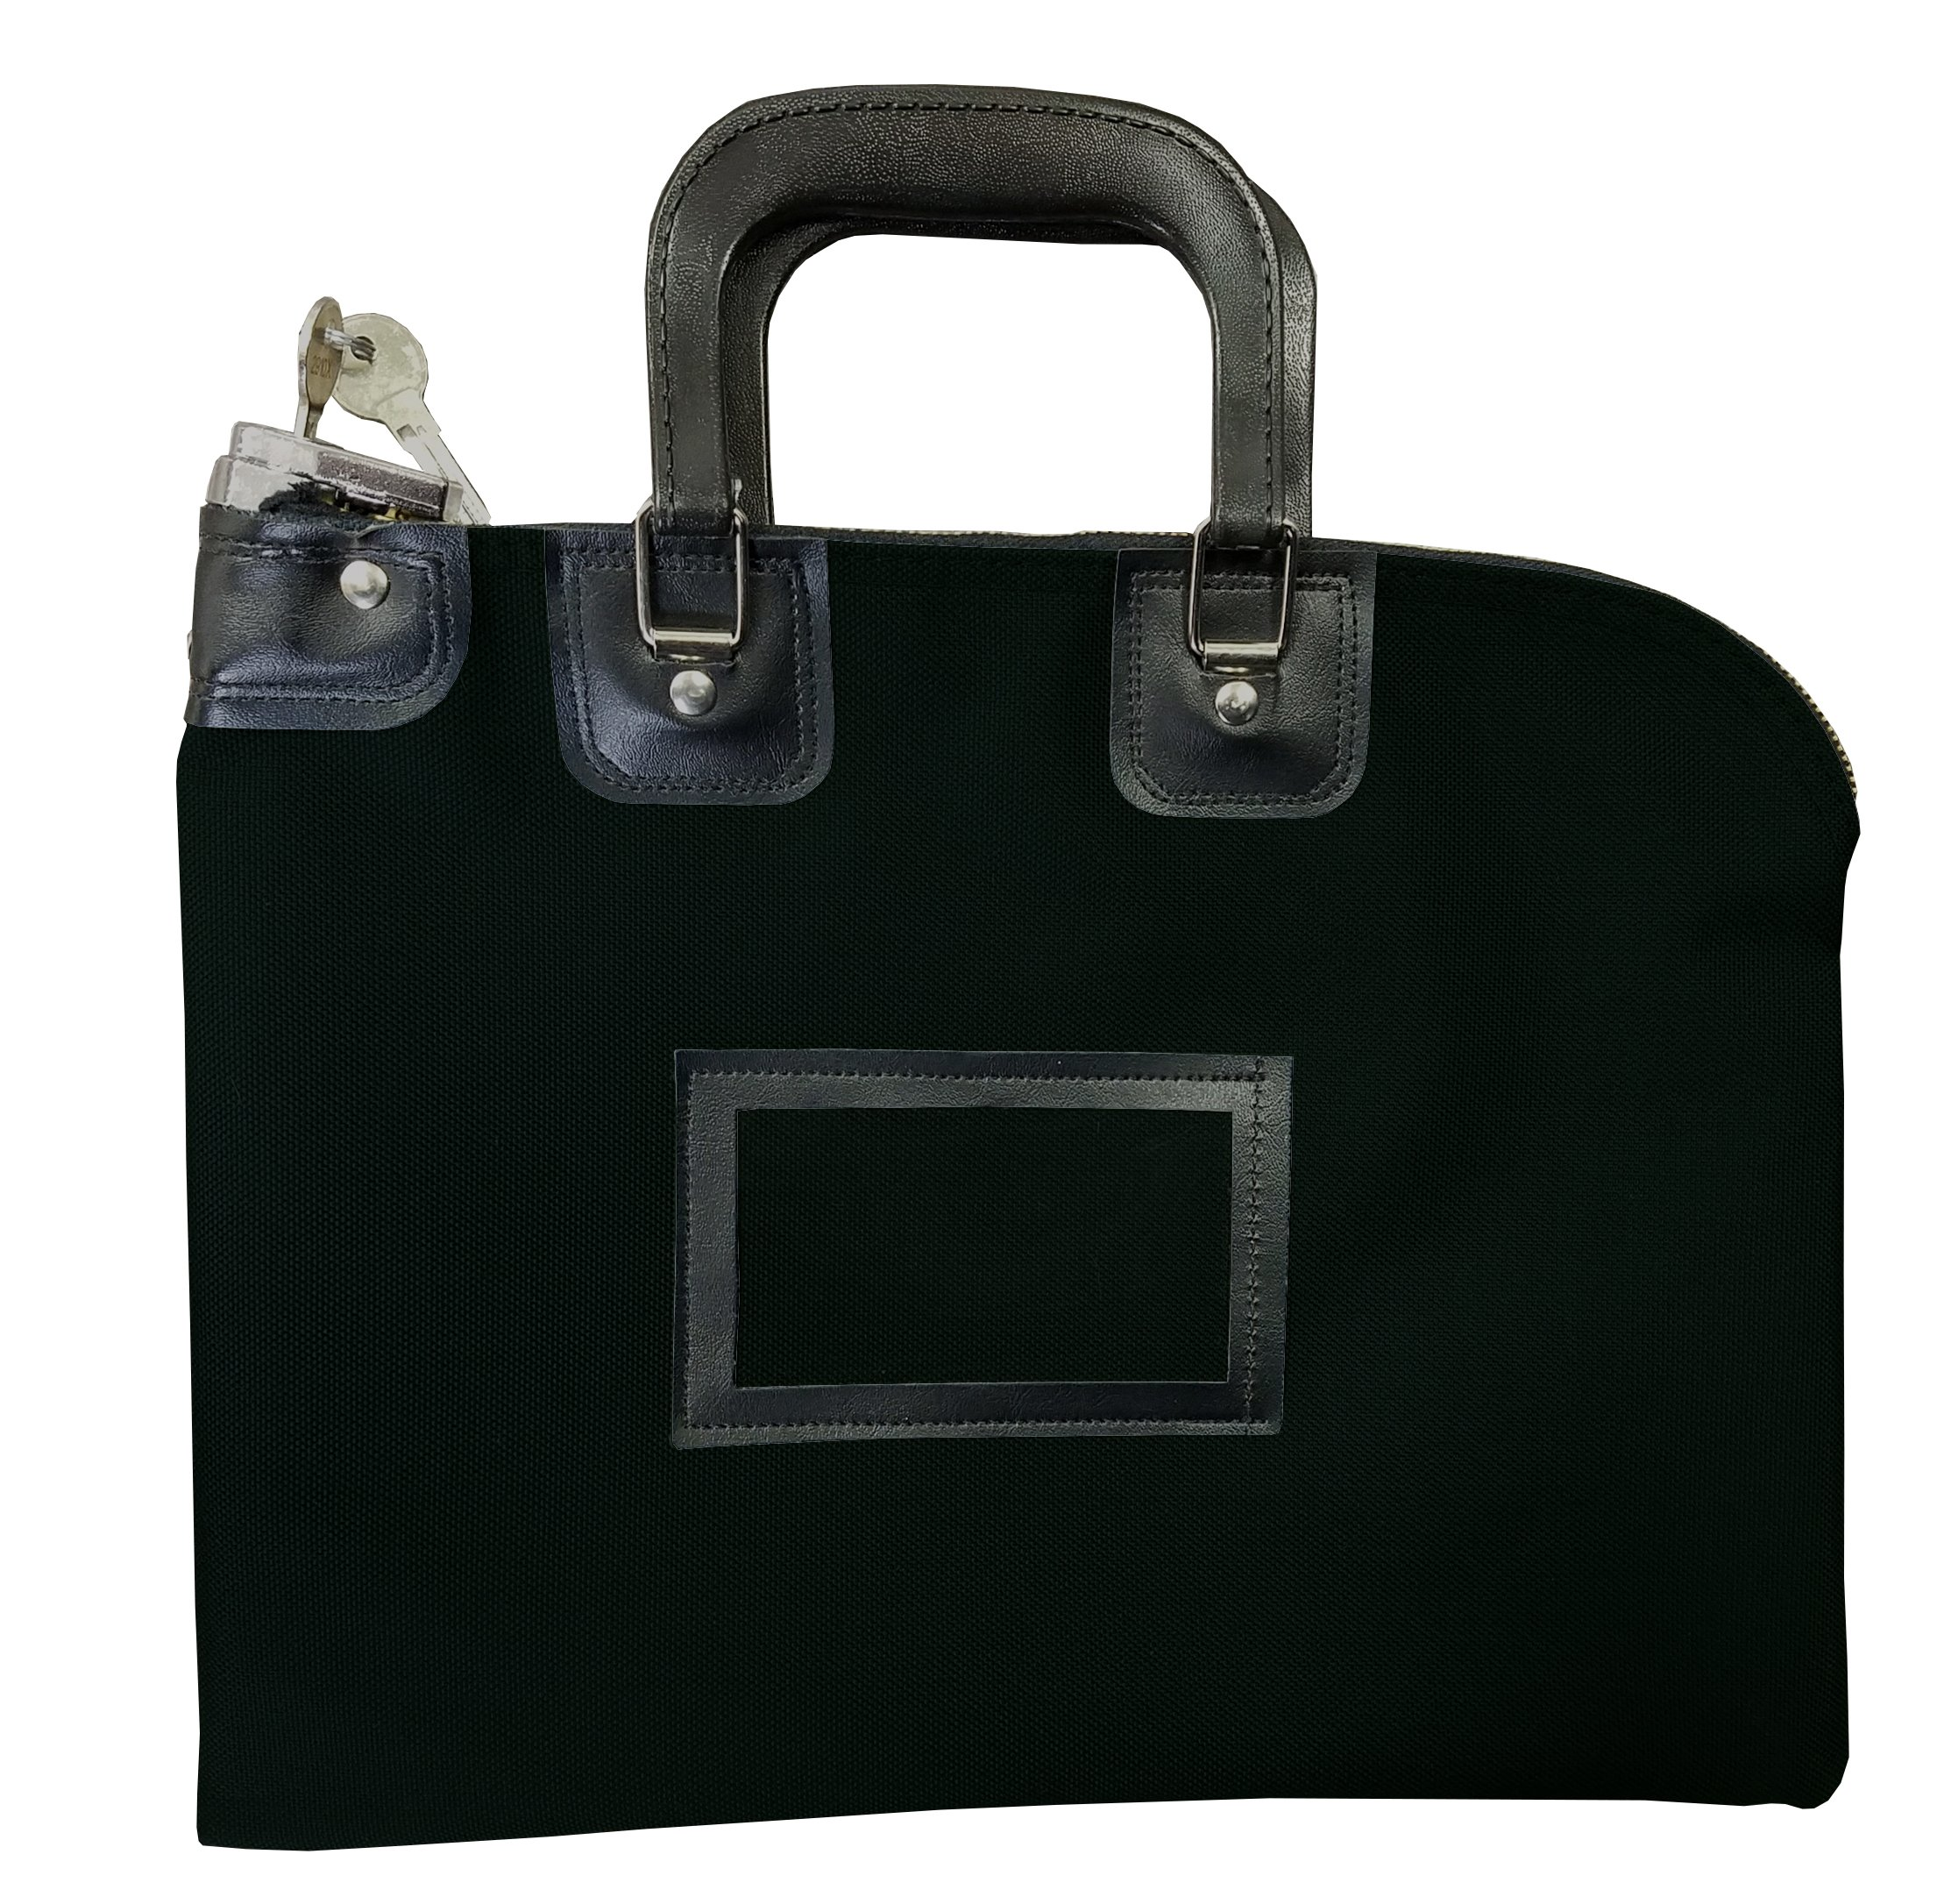 Fireproof Locking Security Bag (Navy Blue) by Cardinal bag supplies